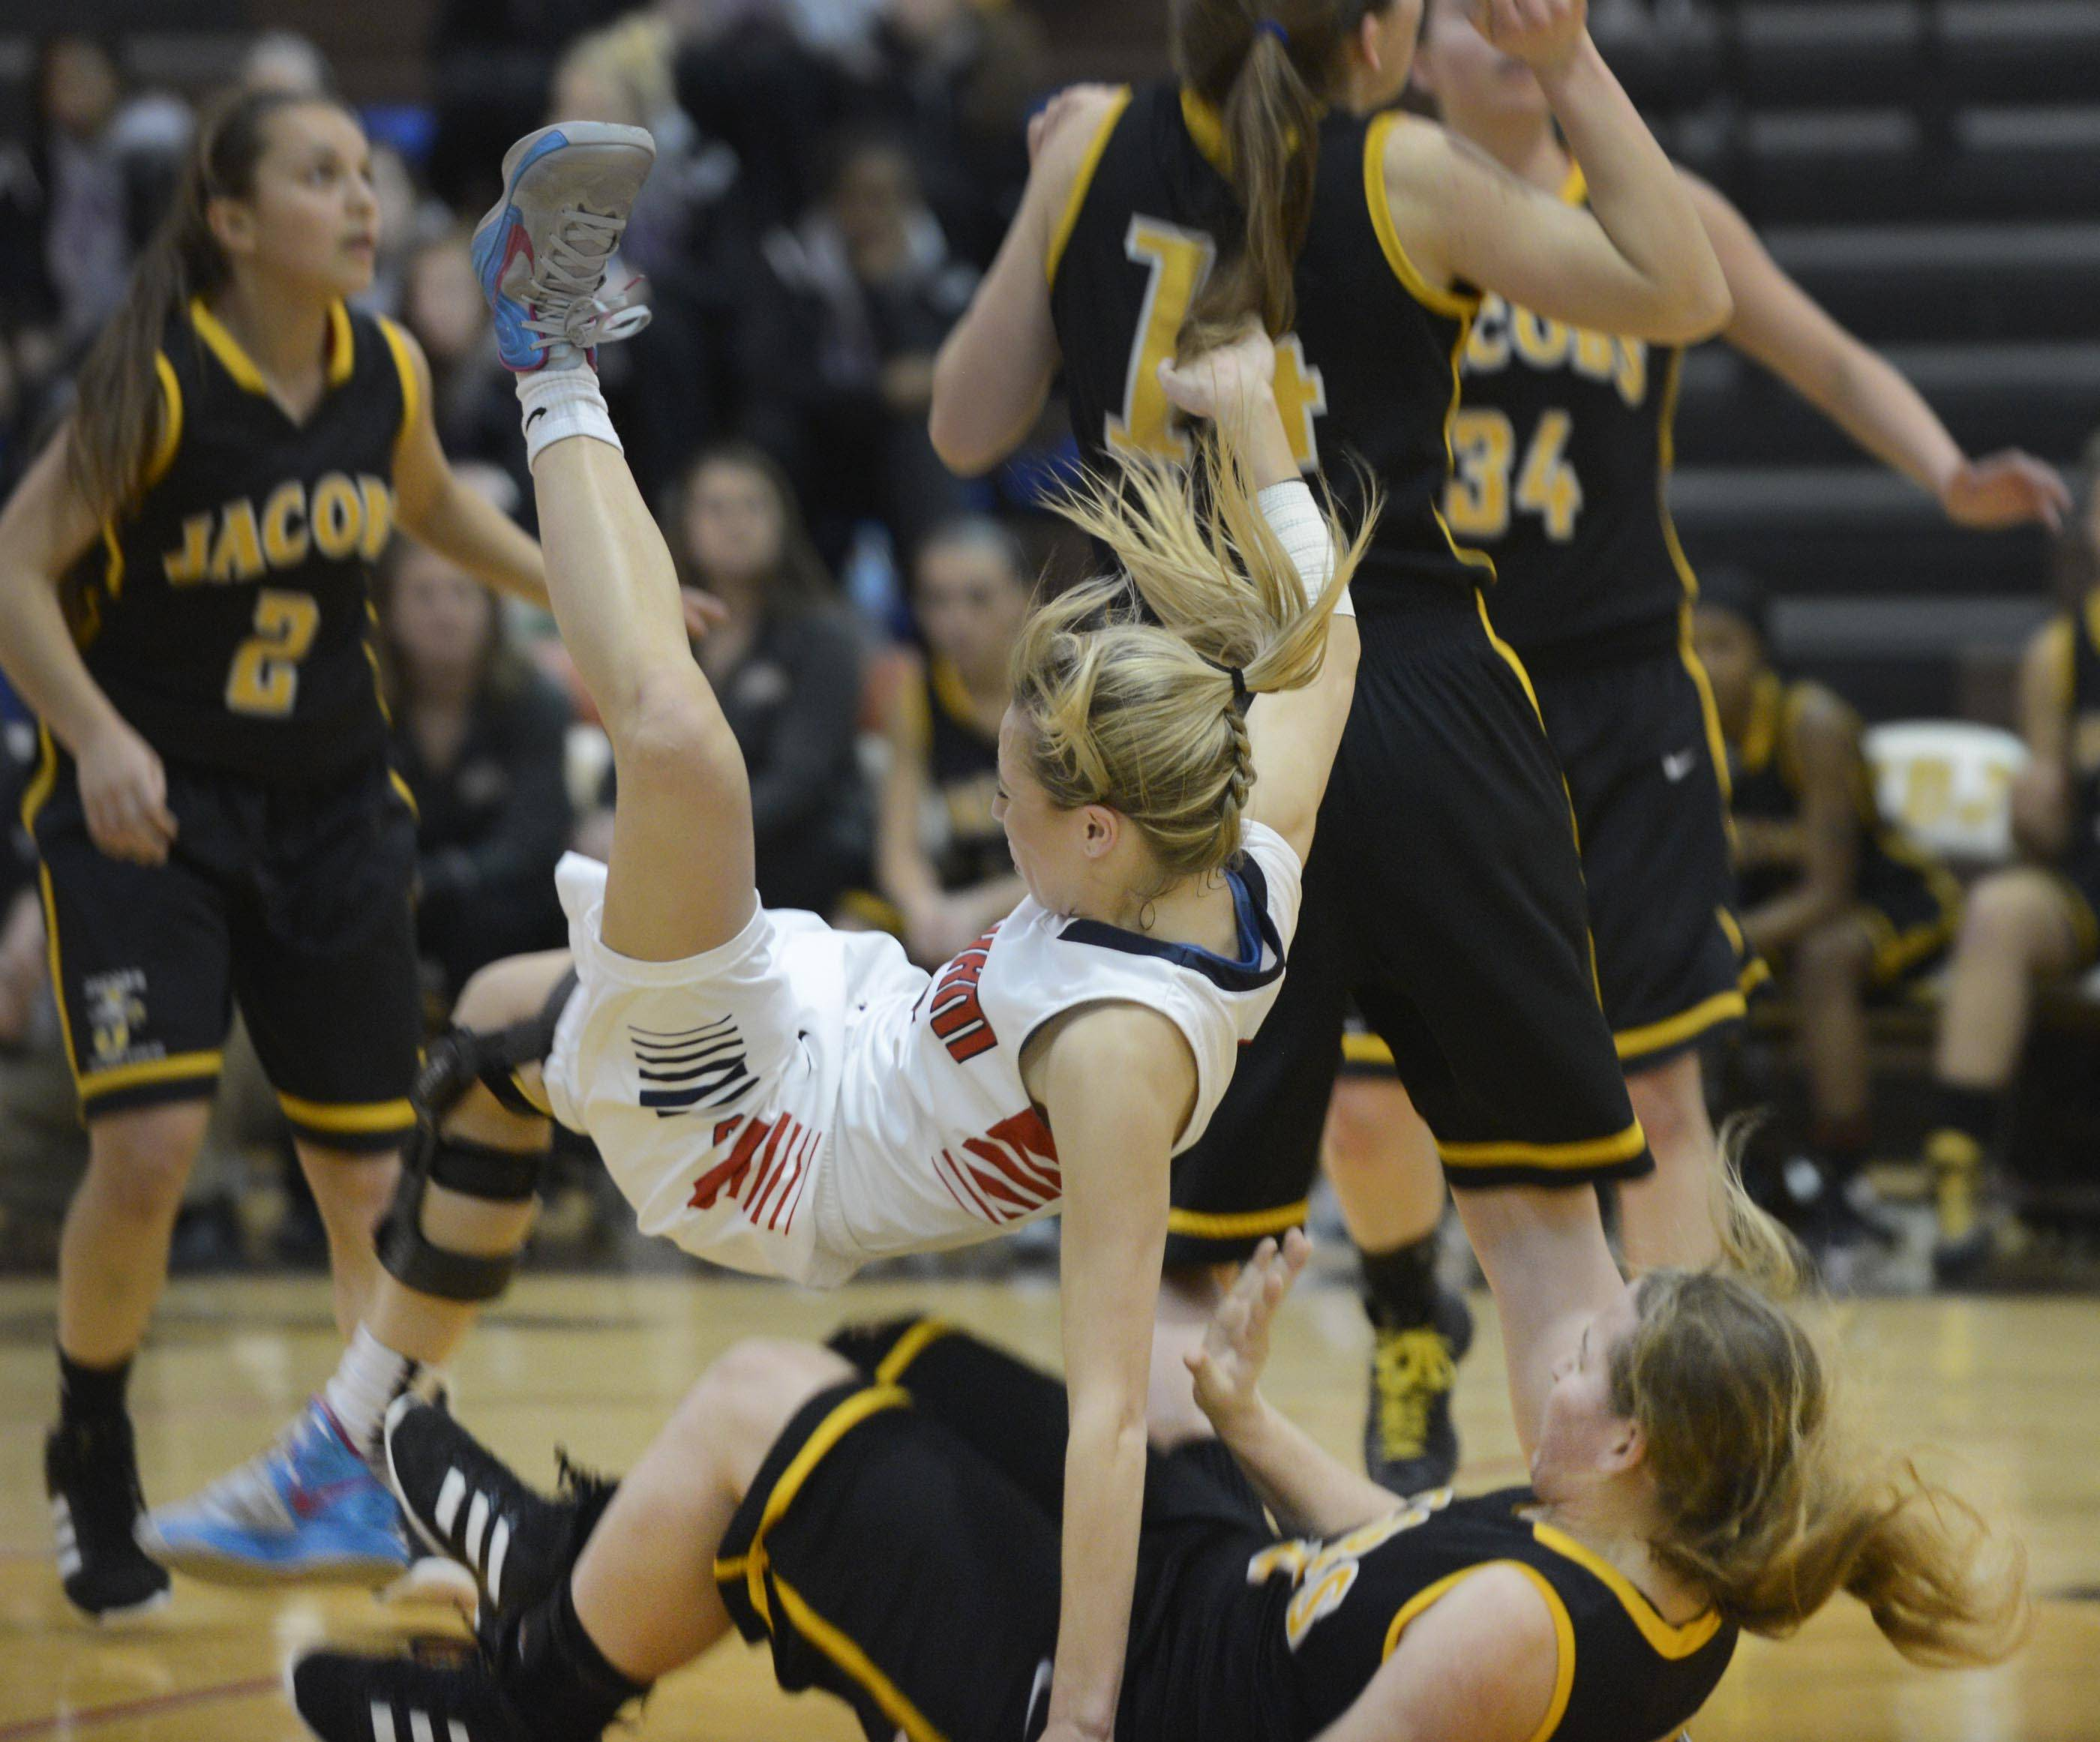 South Elgin's Savanah Uveges falls on Jacobs' Alyssa Lach during Tuesday's regional semifinal game in Algonquin.